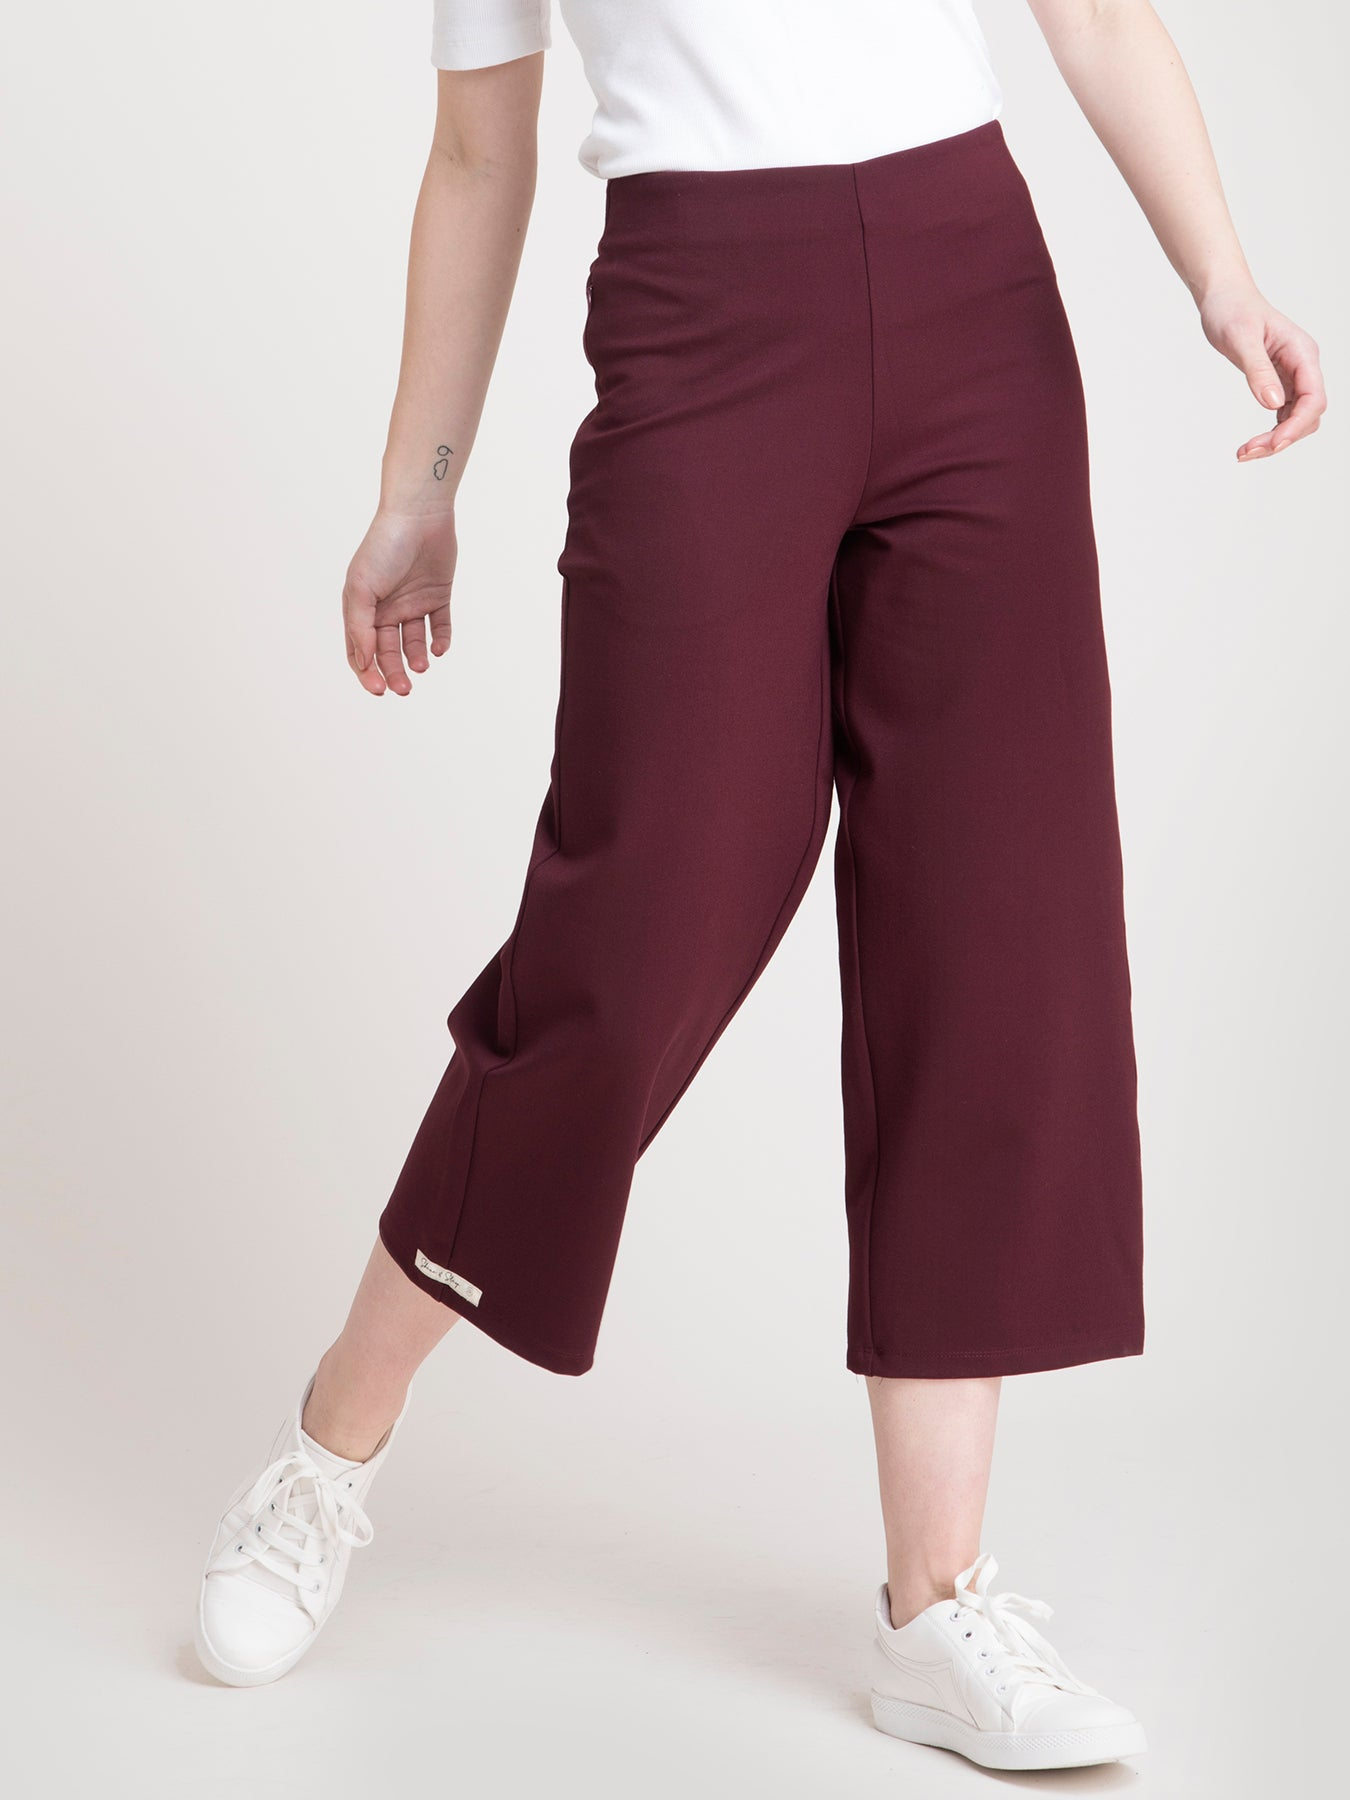 4 Way Stretch LivIn Culottes - Maroon